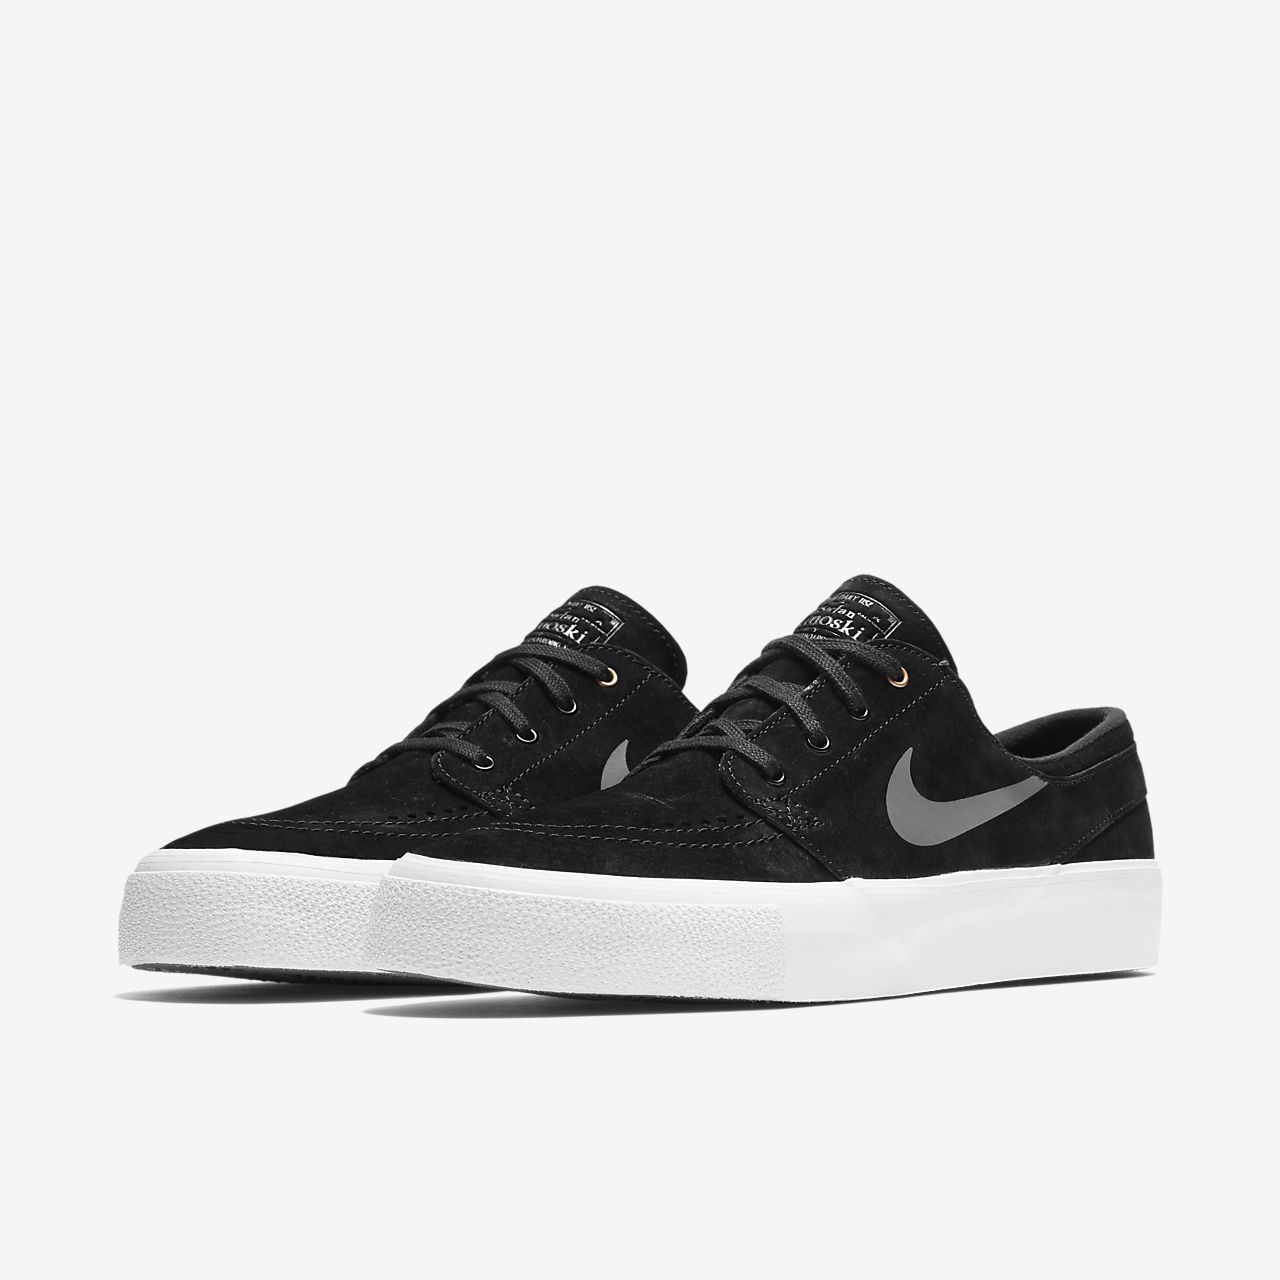 ... Nike SB Zoom Stefan Janoski Premium High Tape Men's Skateboarding Shoe